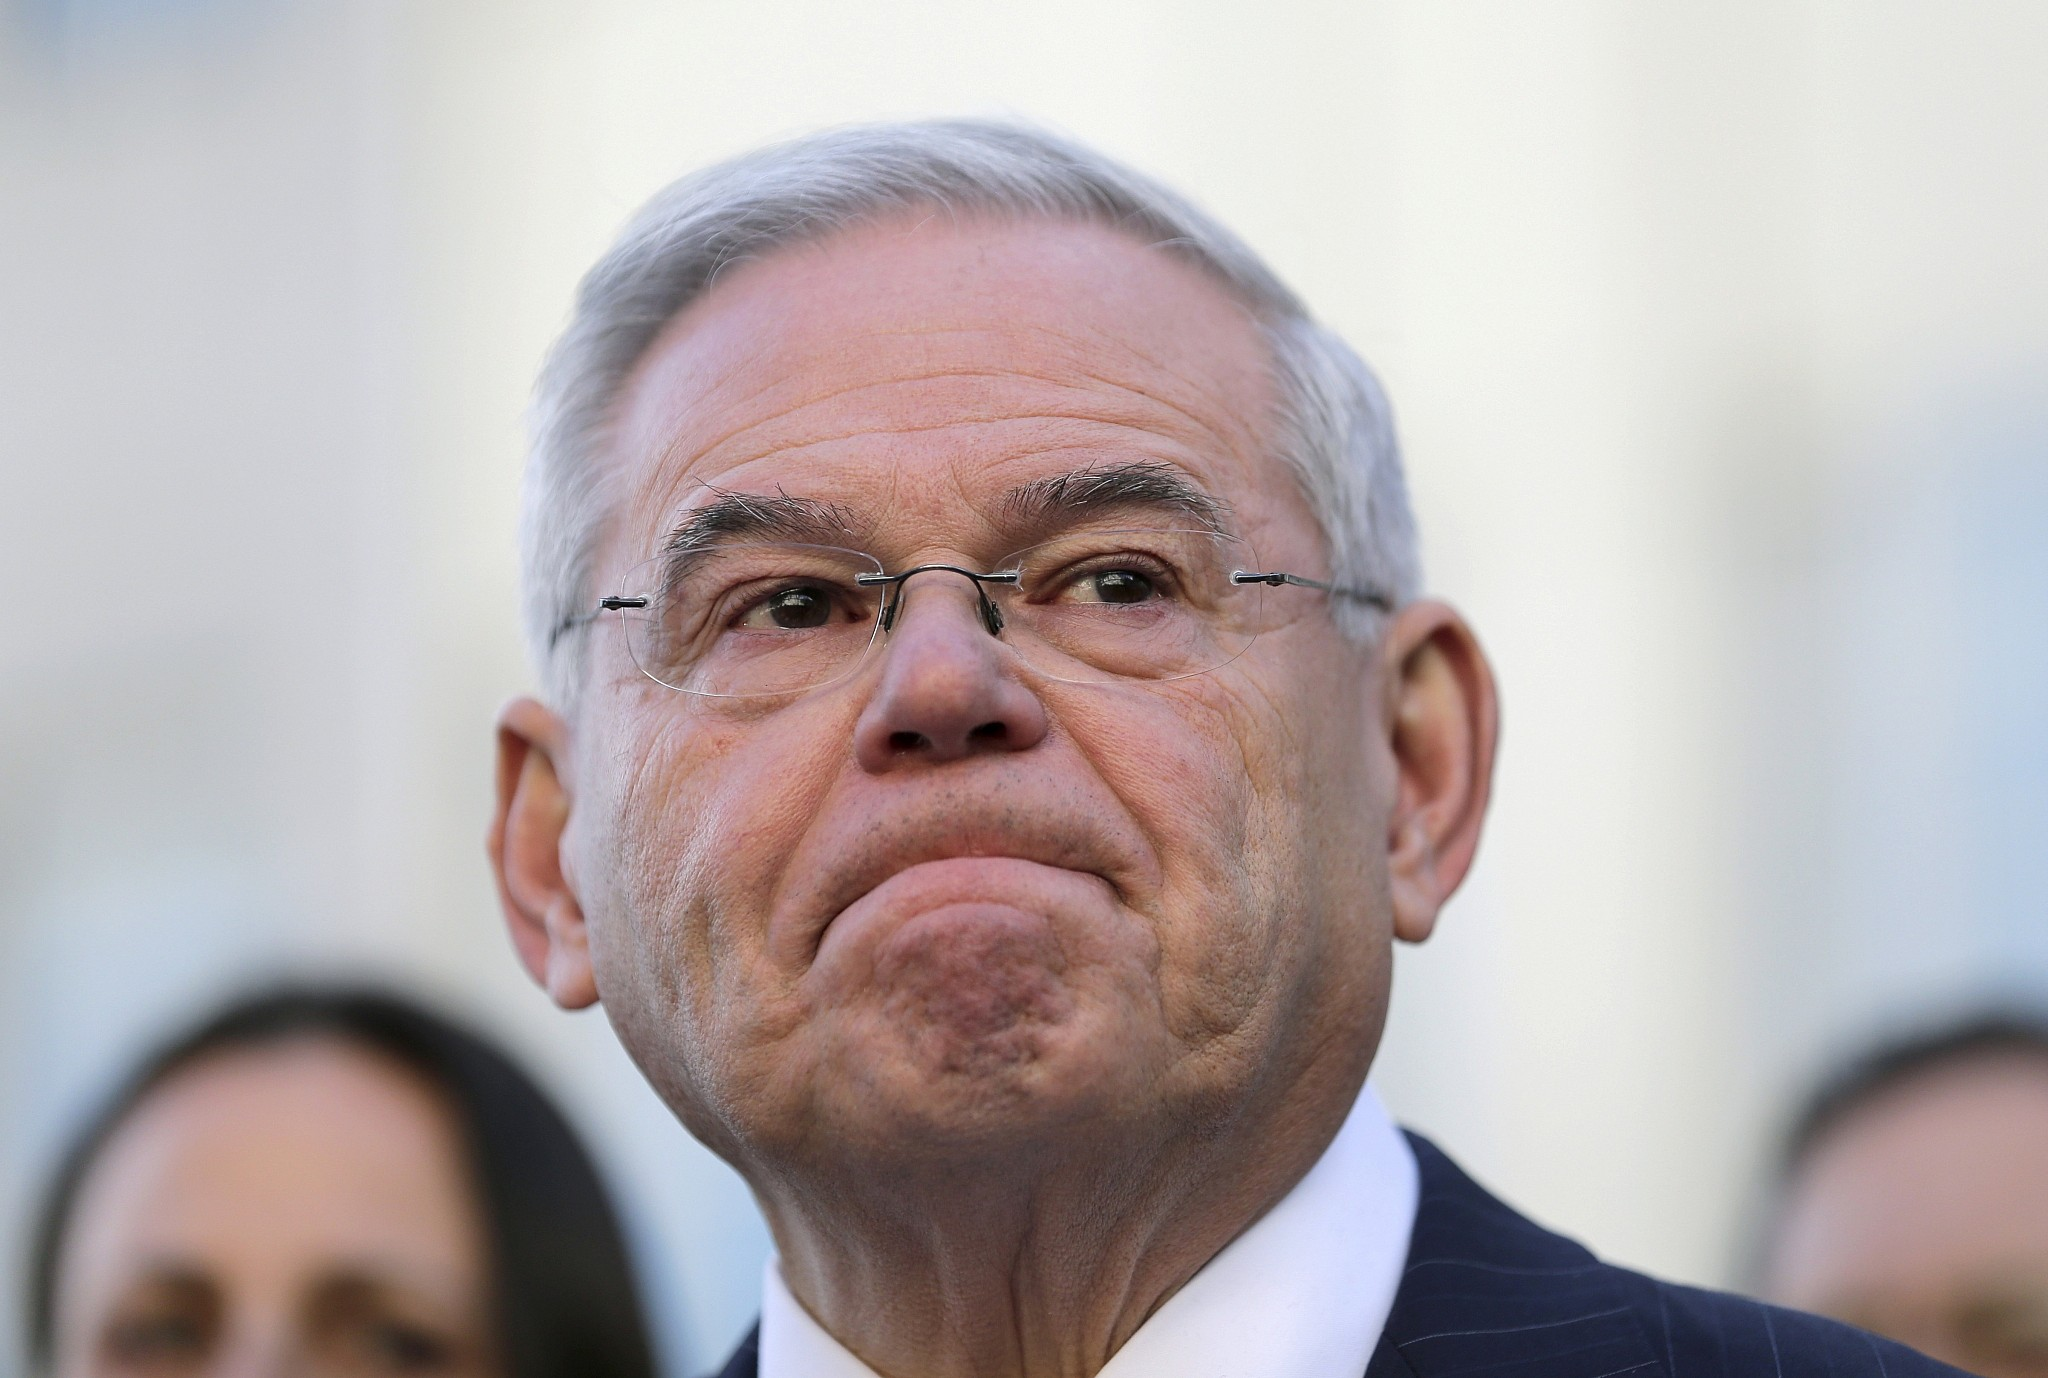 Image result for Did Obama use FBI to pressure Menendez to drop his opposition to new cuba policies?